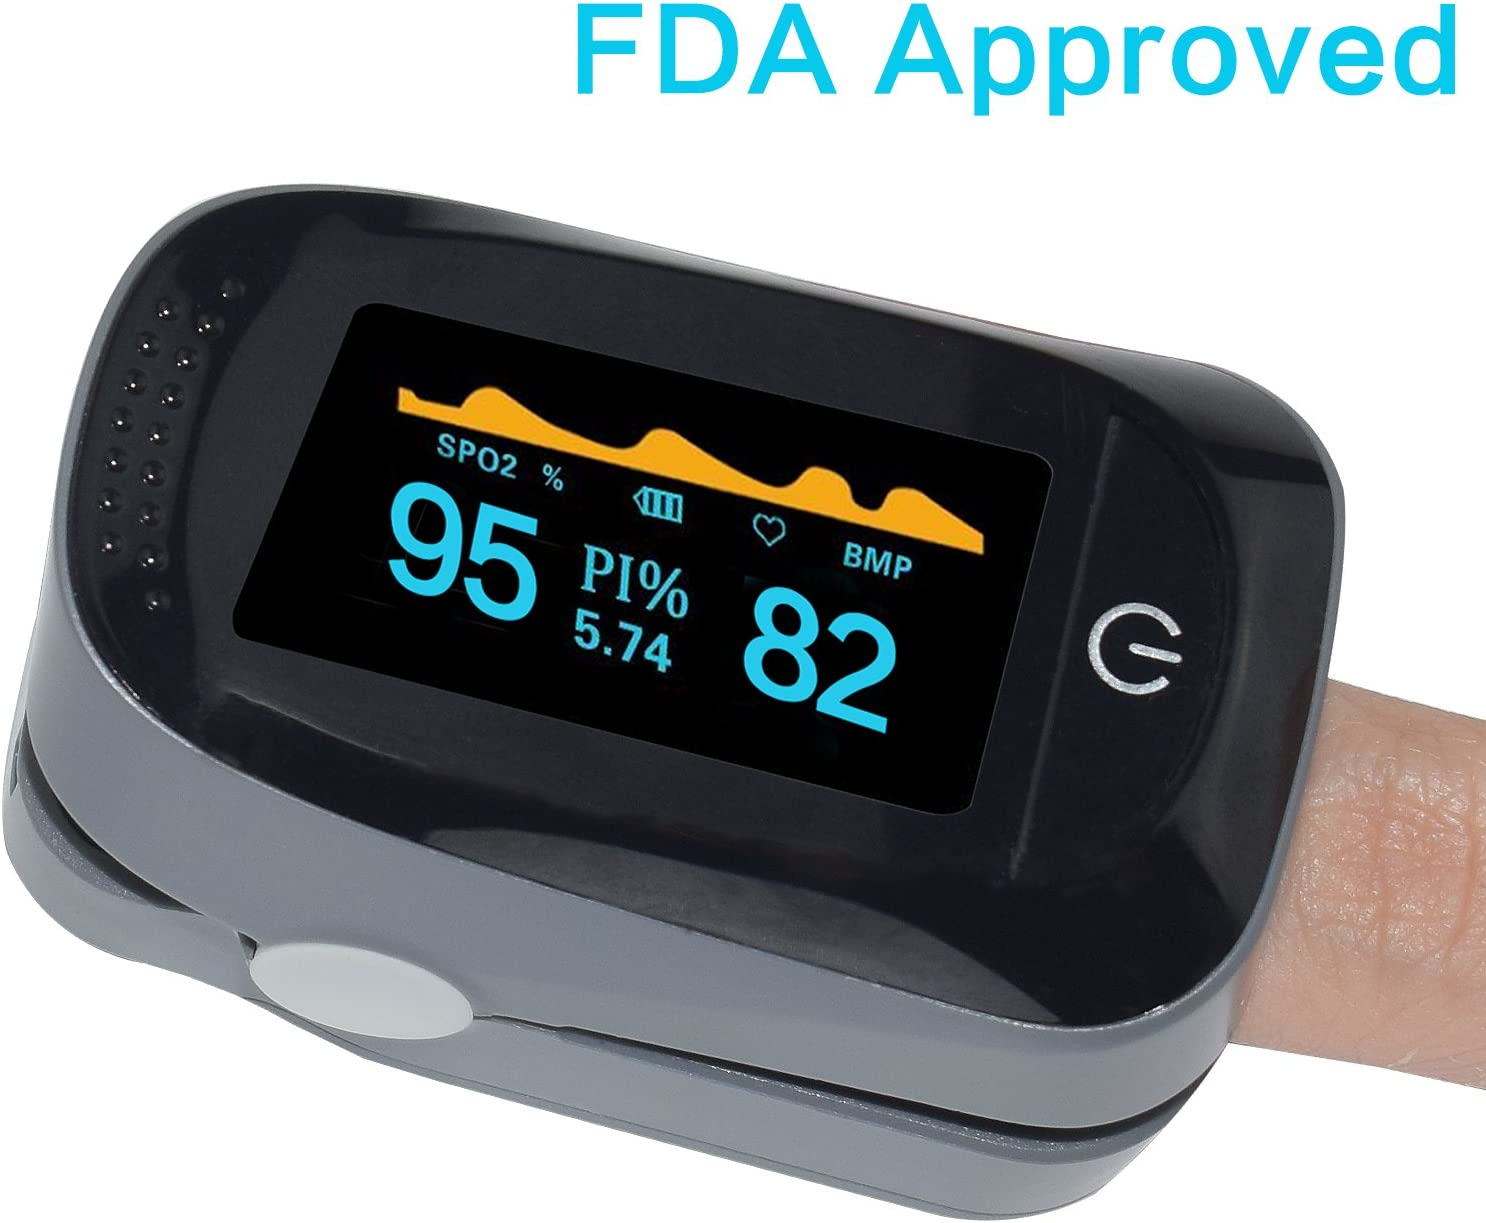 Fingertip Pulse Oximeter Portable Digital Blood Oxygen FDA Approved SPO2 Pulse Sensor Meter with Alarm and Pulse Rate Monitor for Adults and Children Gray